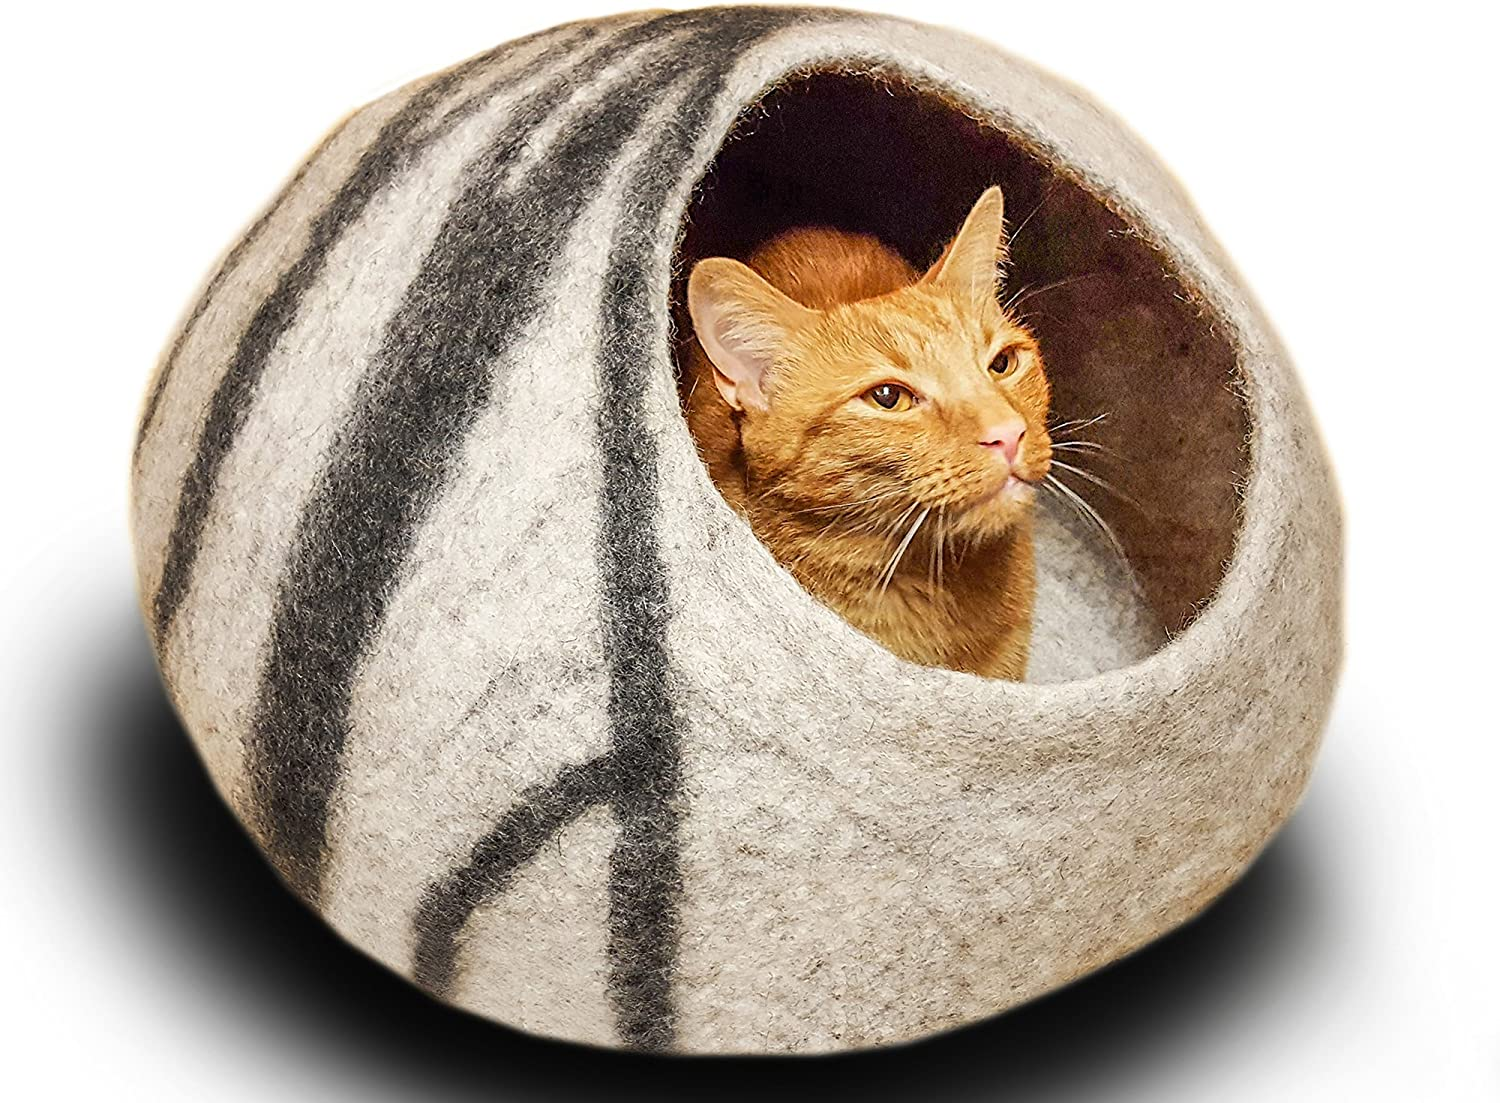 MEOWFIA Premium Felt Cat Bed Cave (Medium)  Handmade 100% Merino Wool Bed for Cats and Kittens